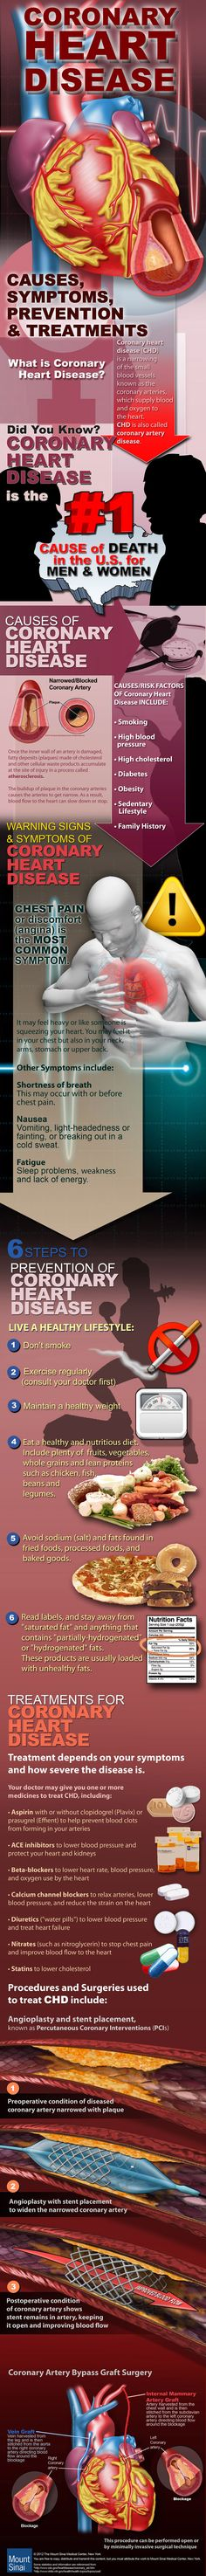 Coronary Heart Disease - Also Known as Coronary Artery Disease - Causes, Symptoms, Prevention and Treatments [INFOGRAPHIC]